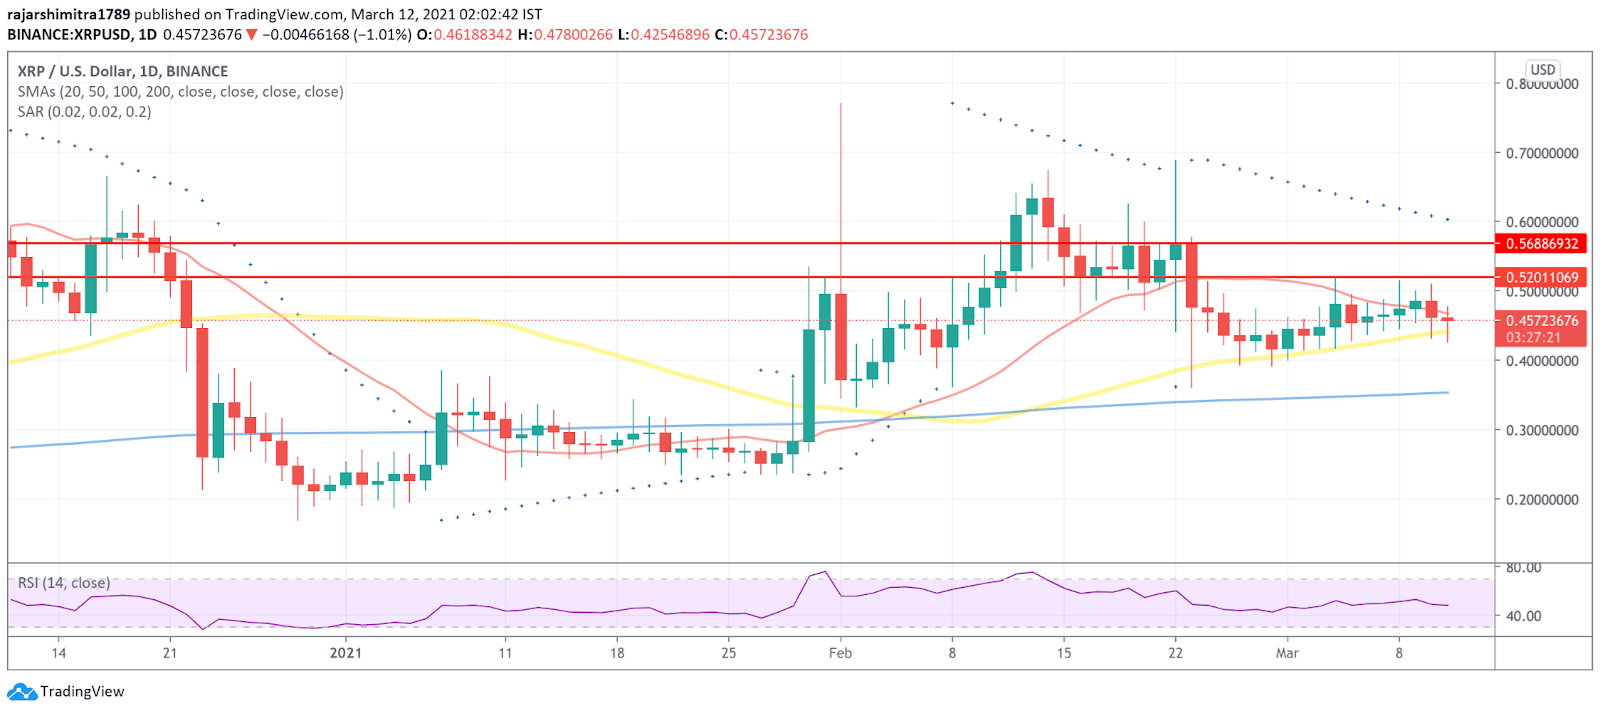 xrp/usd daily chart 031221